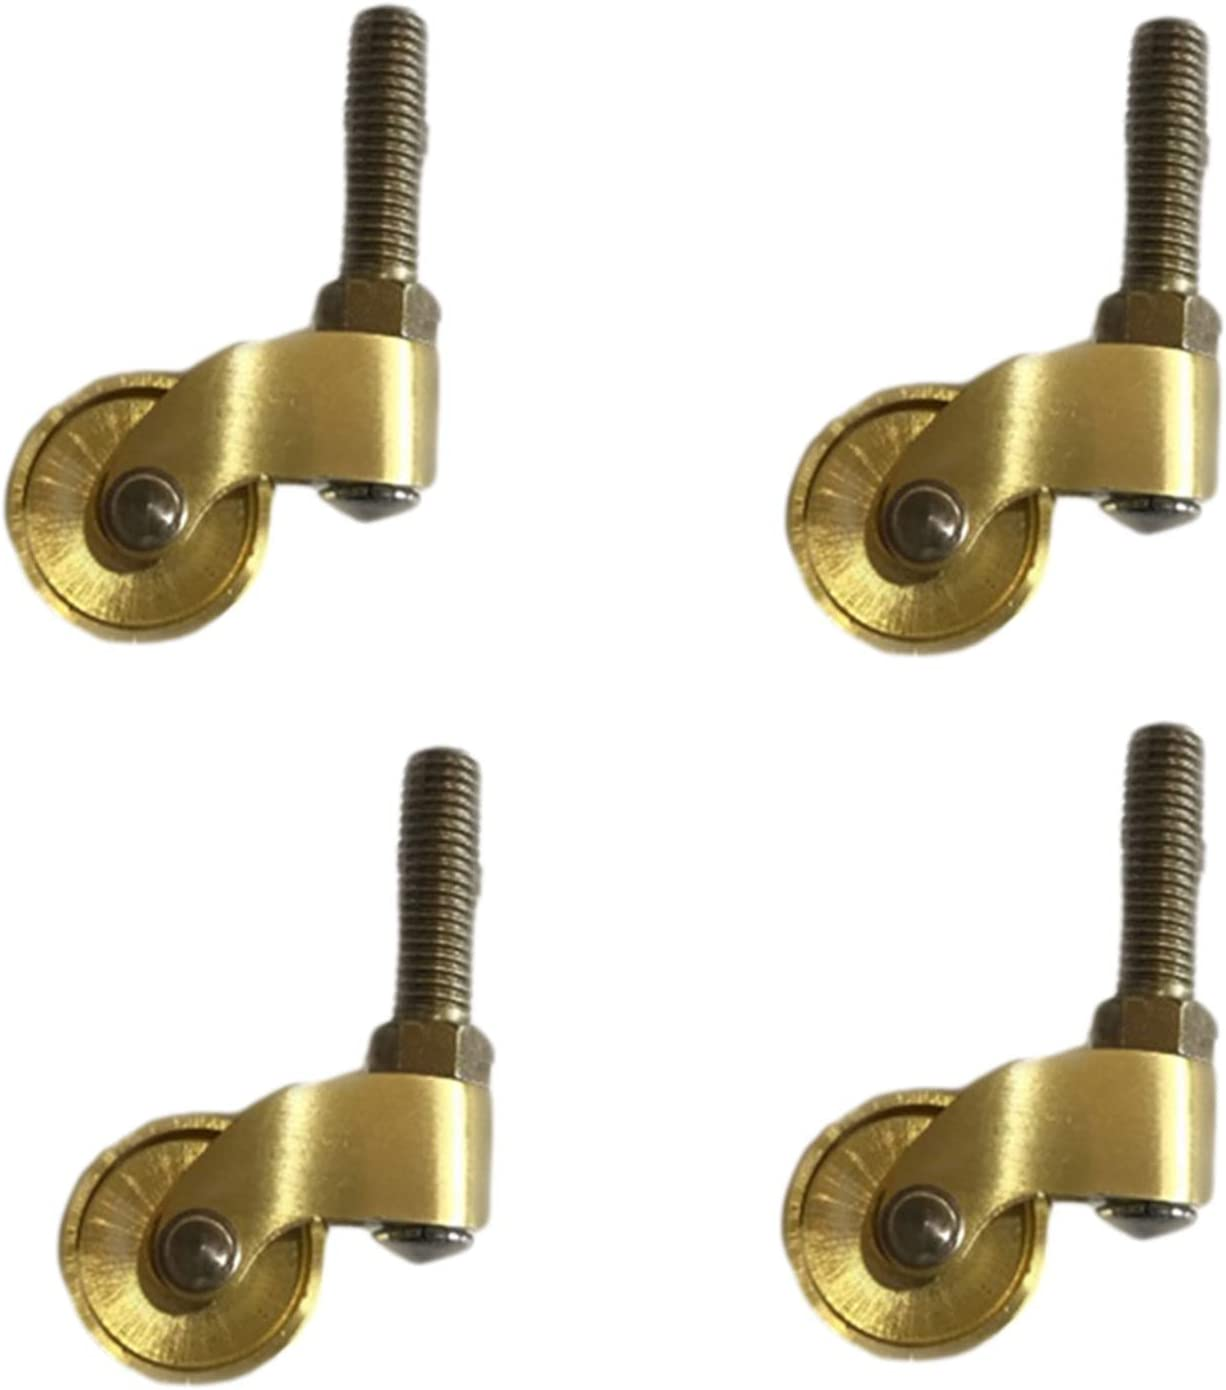 Sofas 2 Piece Furniture Casters Brass Furniture Suitable for Piano Feet Threaded Stem Caster Wheel,Non-Slip Hardware Accessories, with Screws